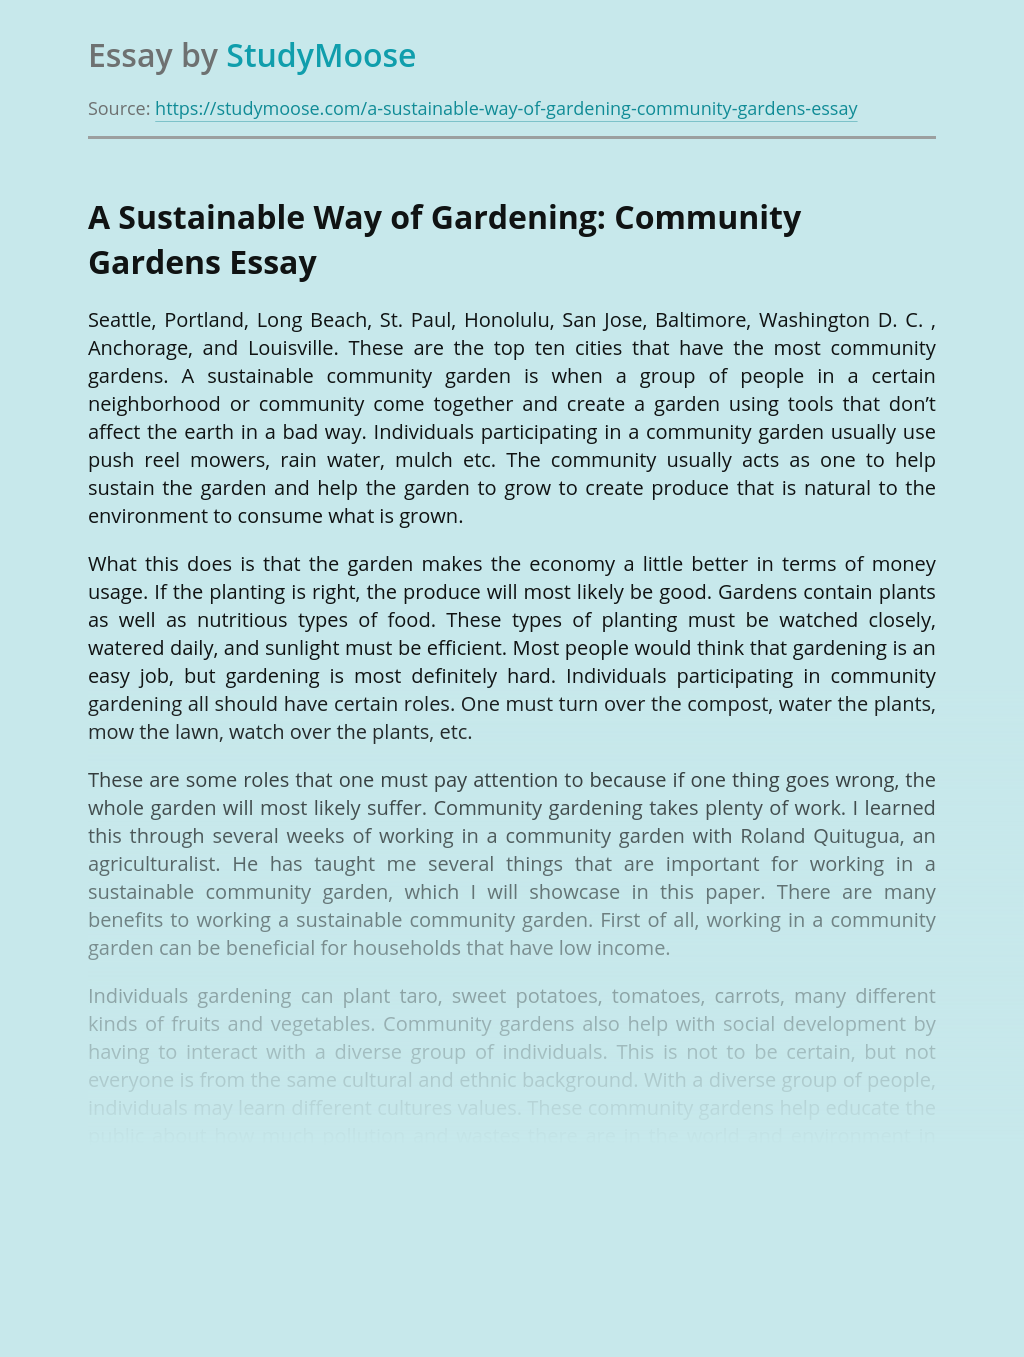 A Sustainable Way of Gardening: Community Gardens